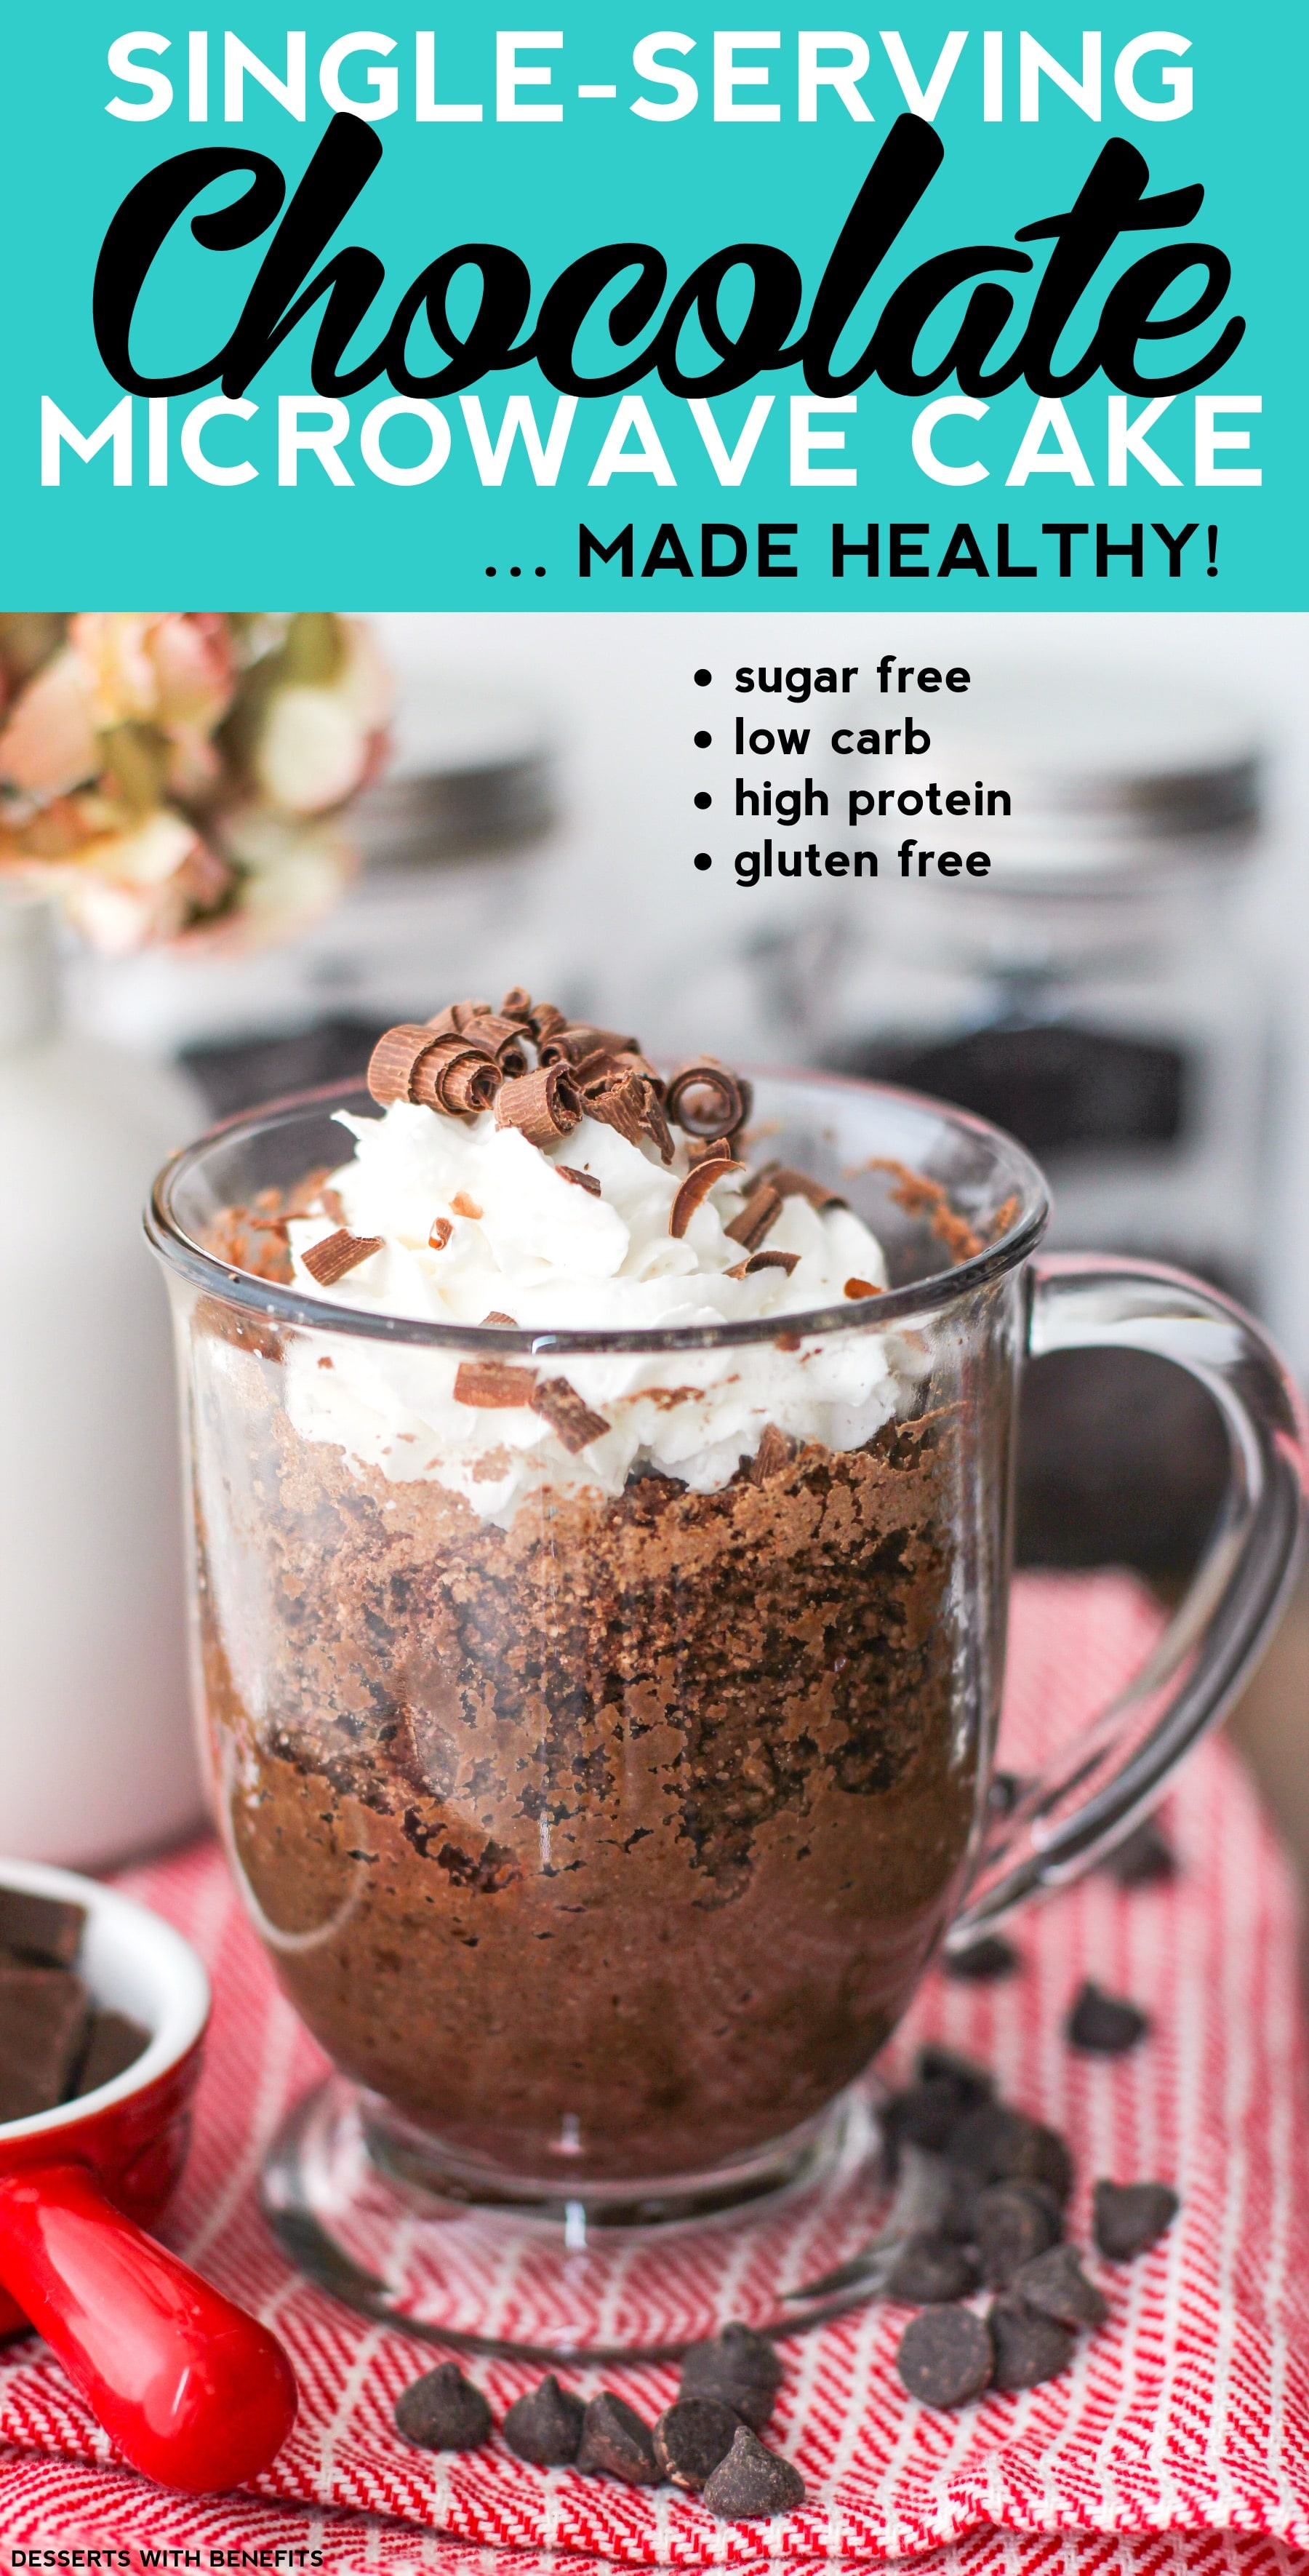 Healthy Single-Serving Chocolate Microwave Cake (refined sugar free, low carb, high protein, high fiber, gluten free, vegan) - Healthy Dessert Recipes at Desserts with Benefits